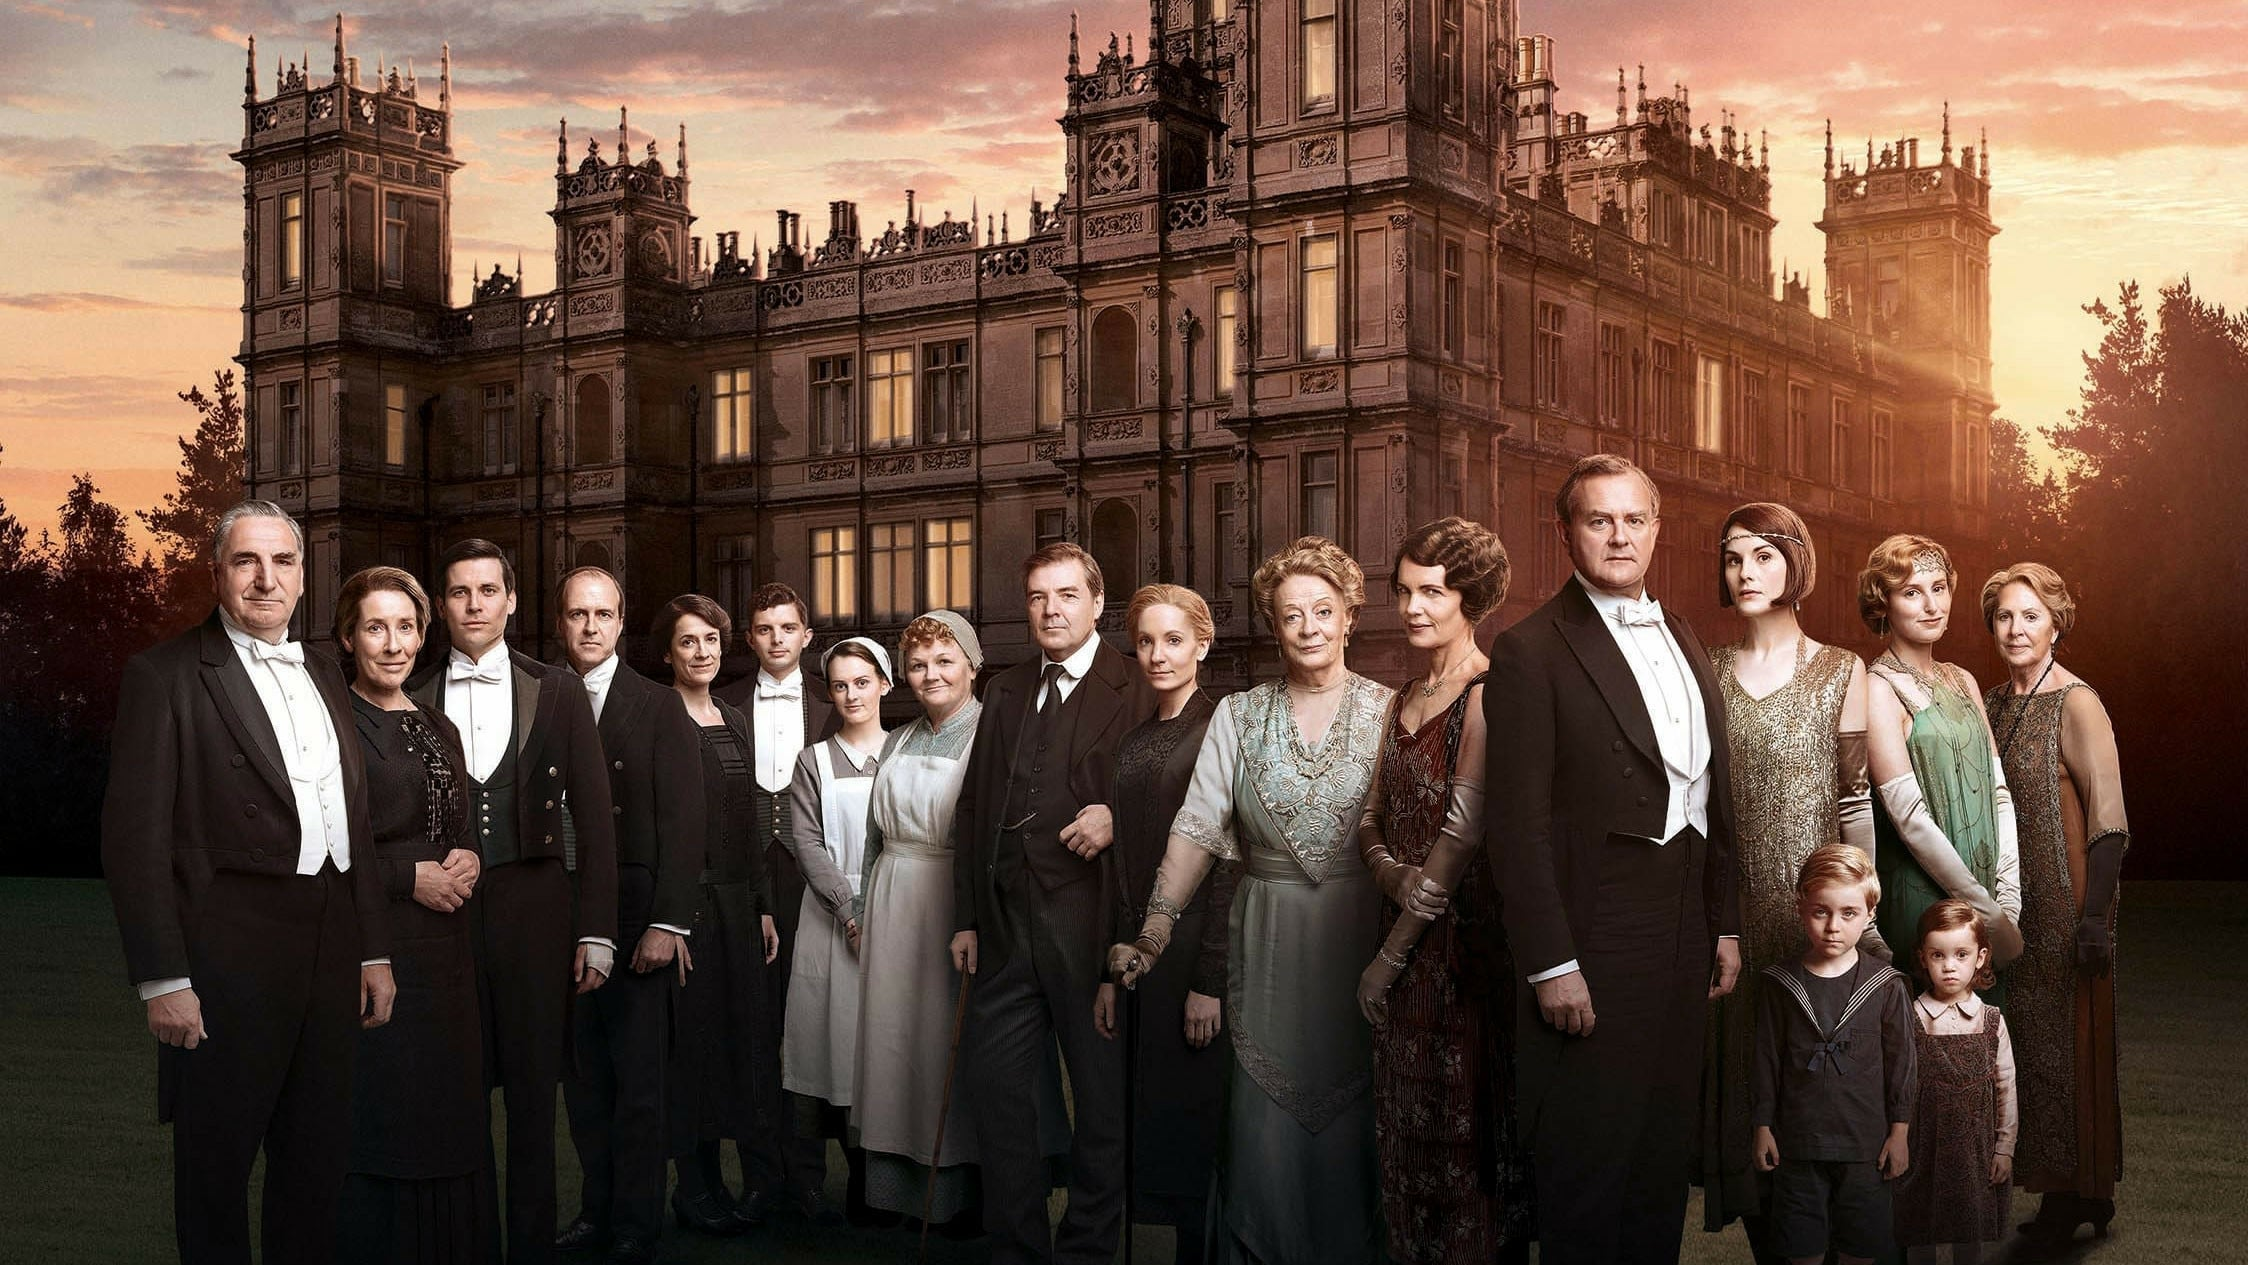 A second movie for Downton Abbey